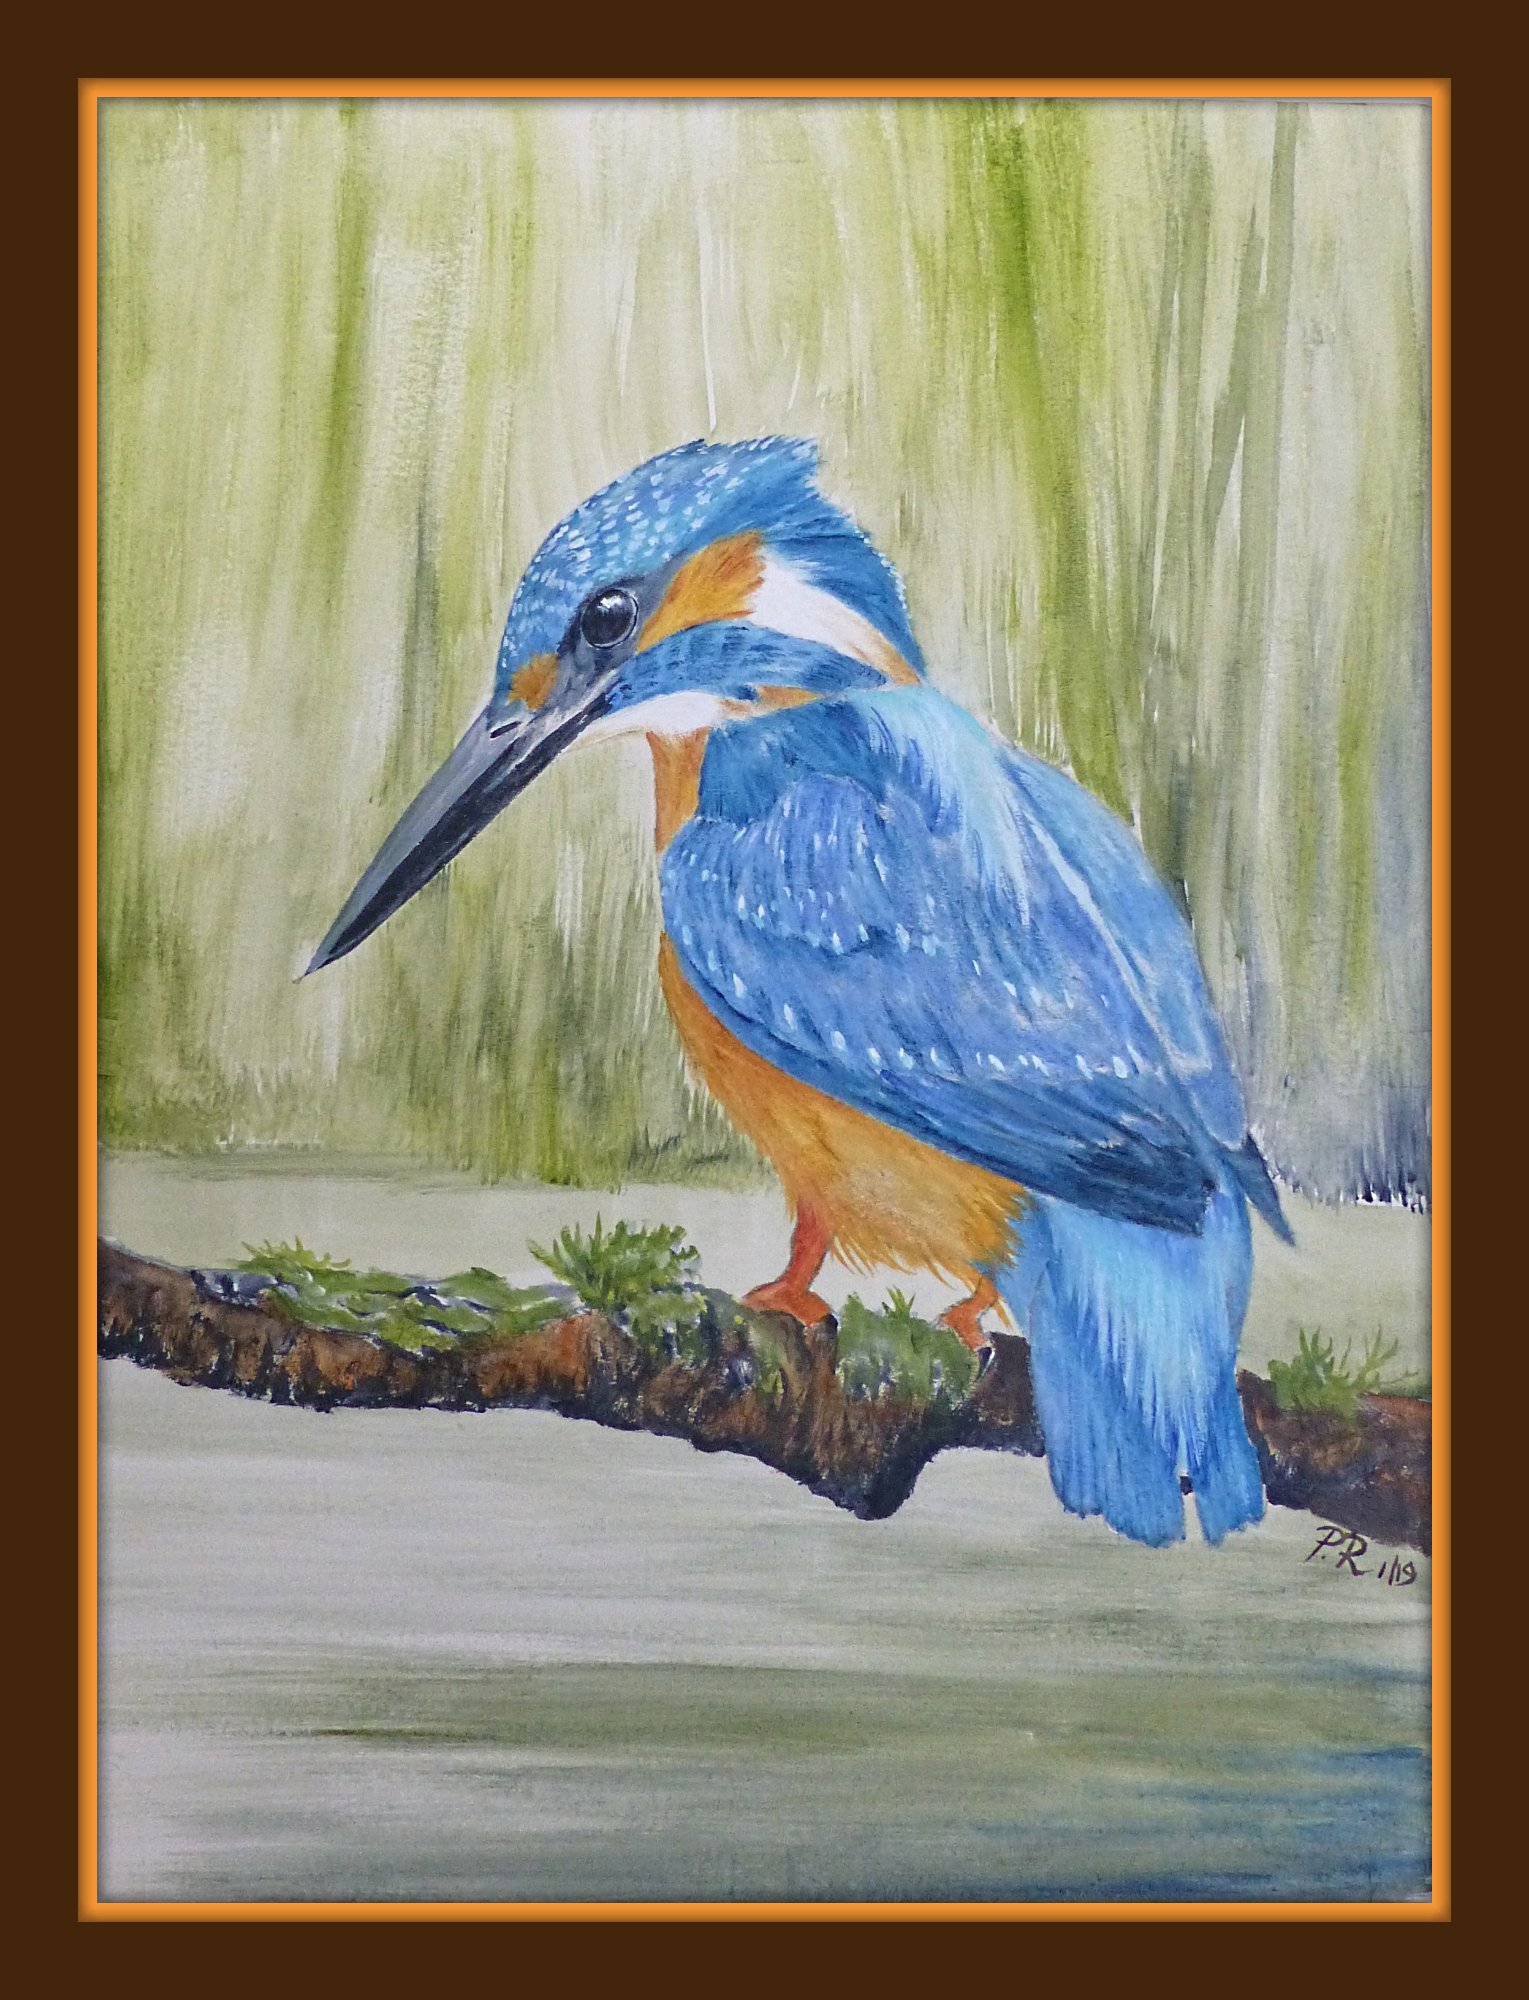 'Kingfisher' The brightest blue and orange bird seen fishing along riverbanks.